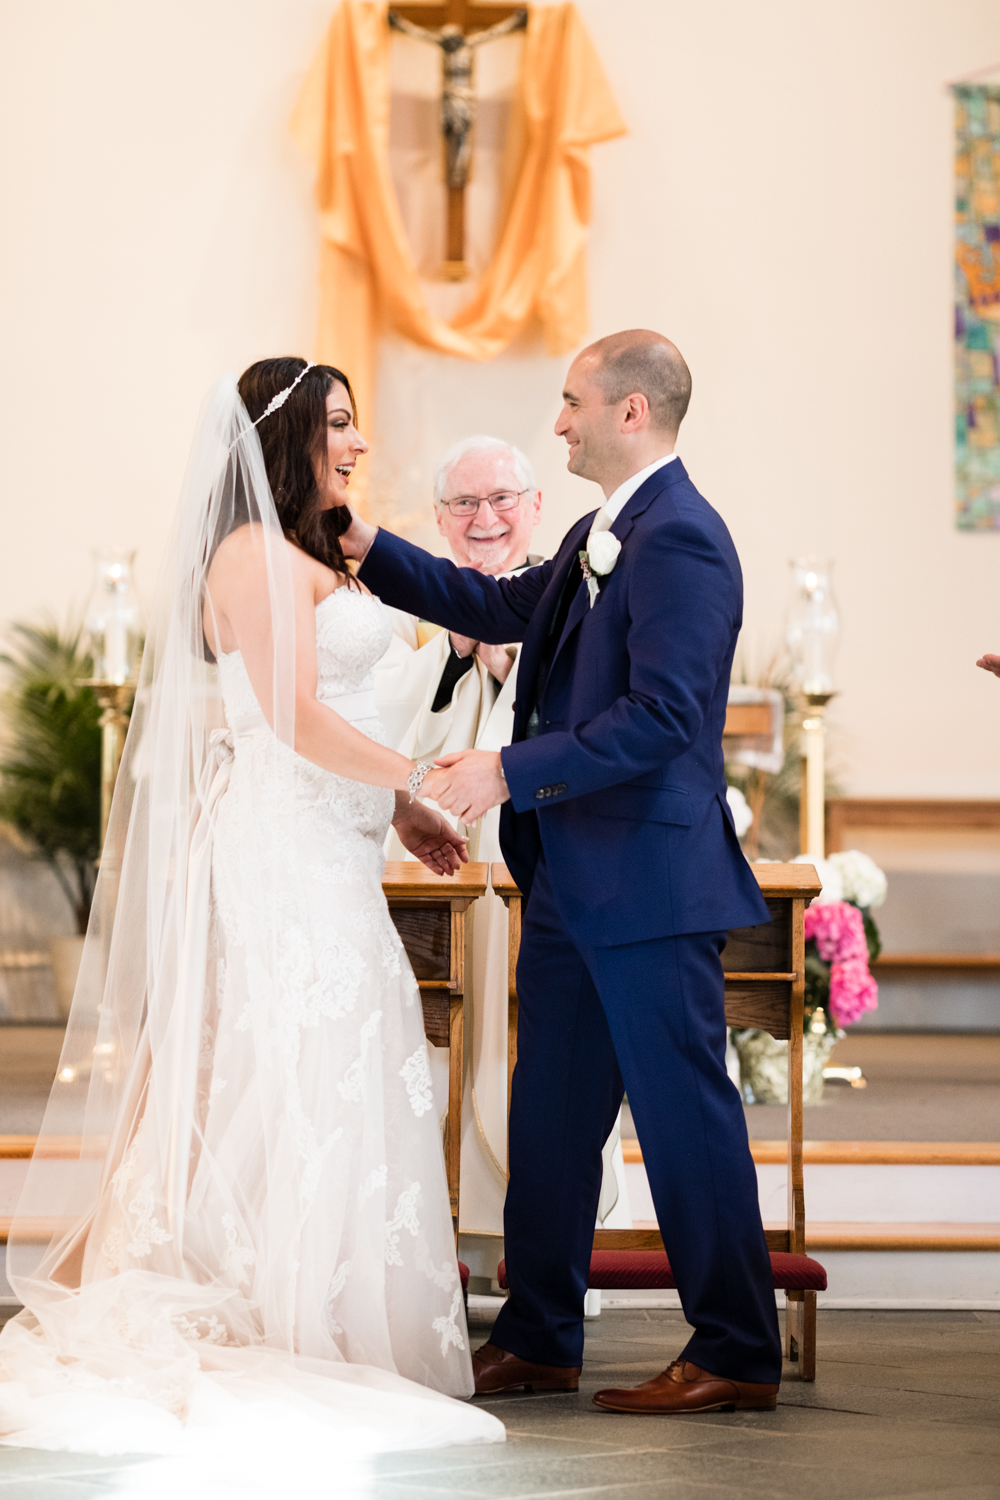 Tiare_Dan_BeeandThistleInn_Connecticut_Wedding-12.jpg